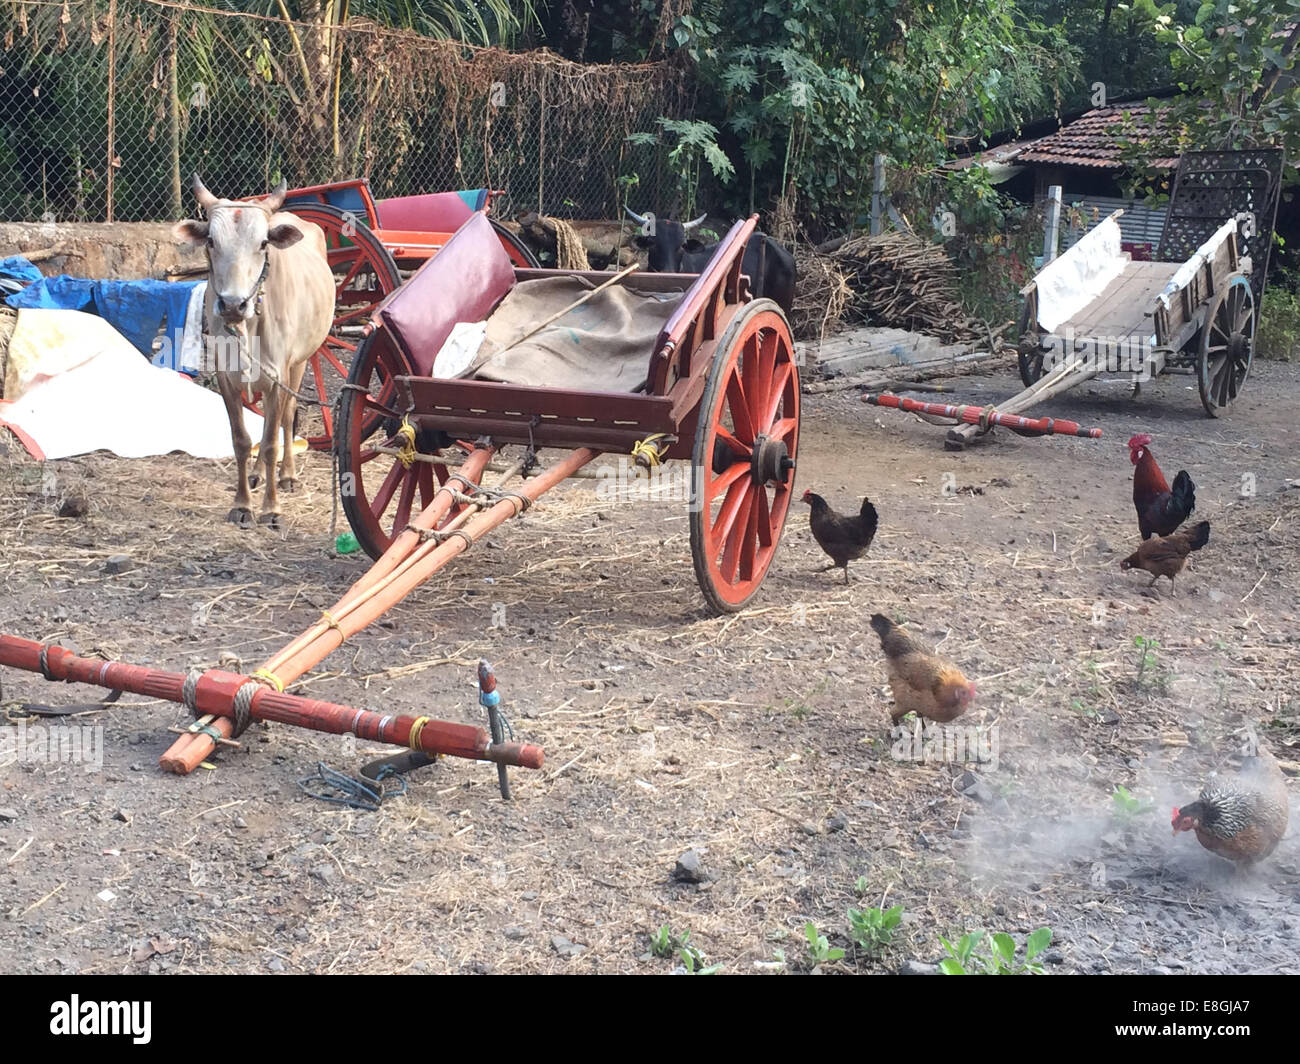 India, Maharashtra, Alibaug village, Yard outside village home - Stock Image